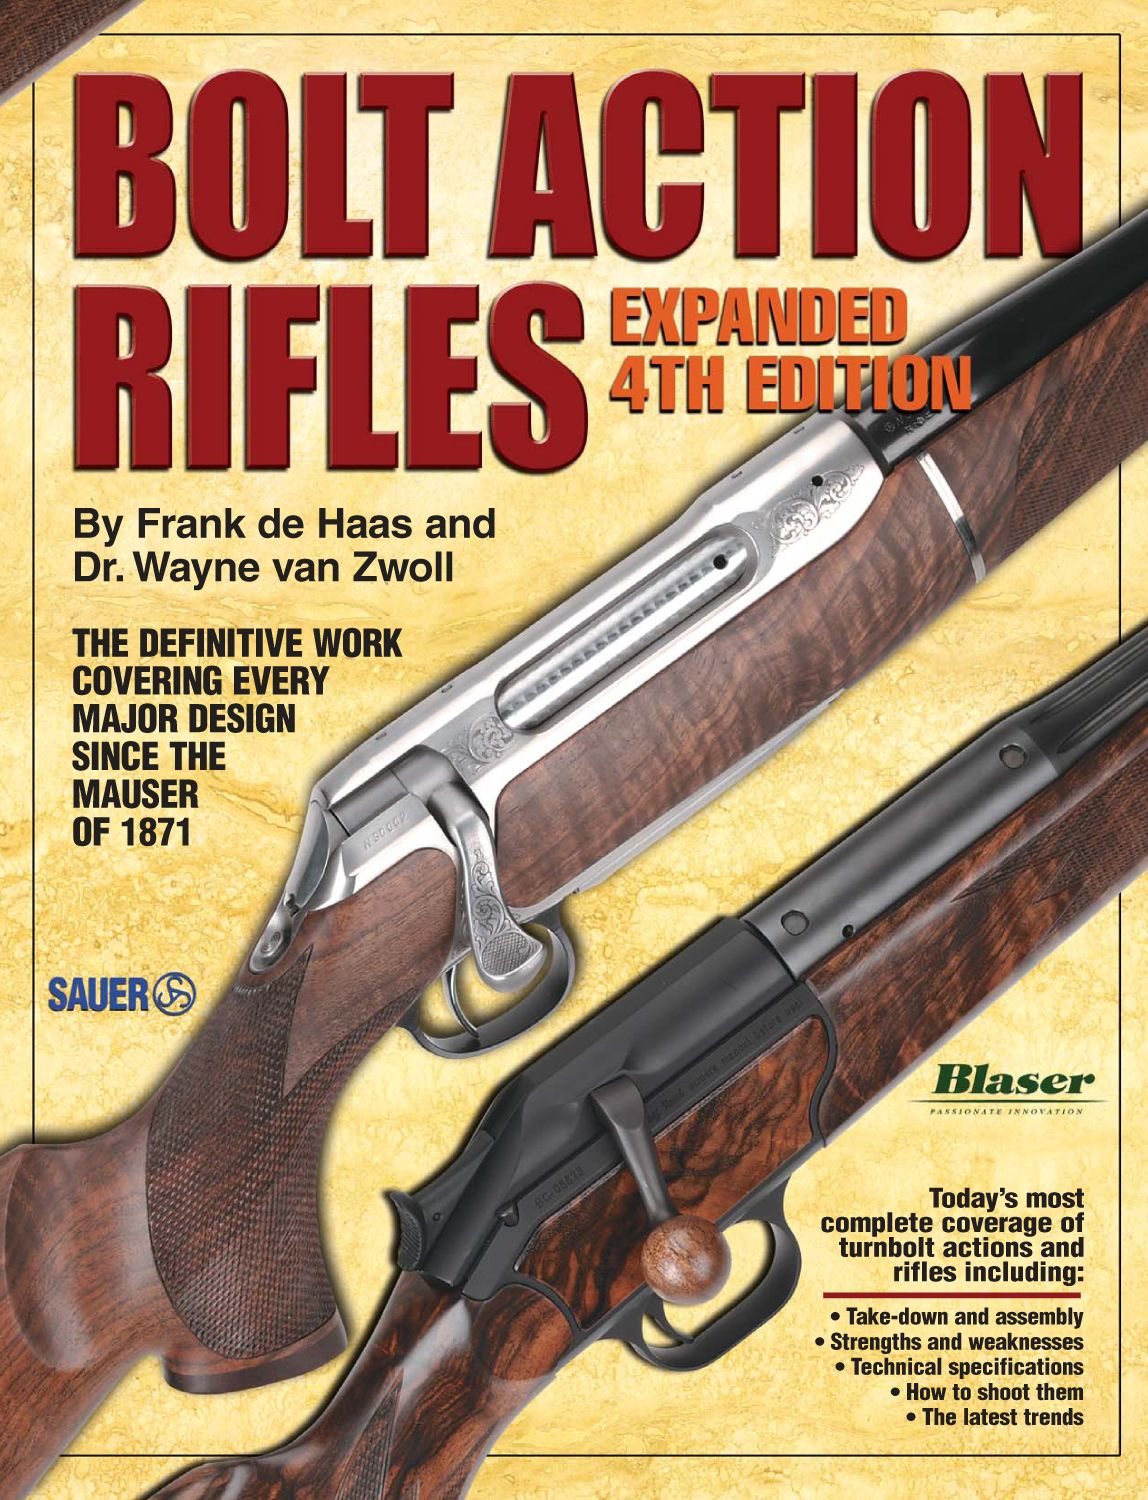 Bolt Action Rifles Expended - 4th Edition